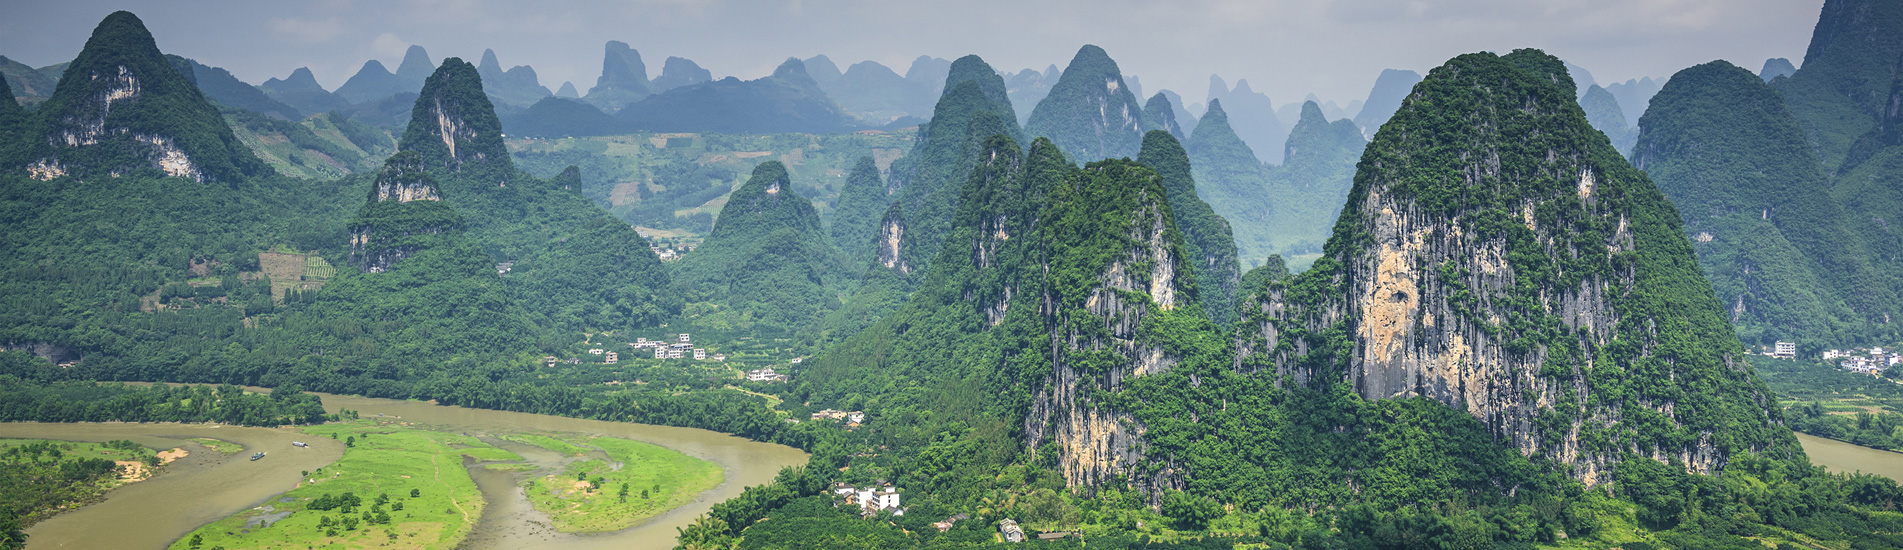 the karst landscape of Guilin